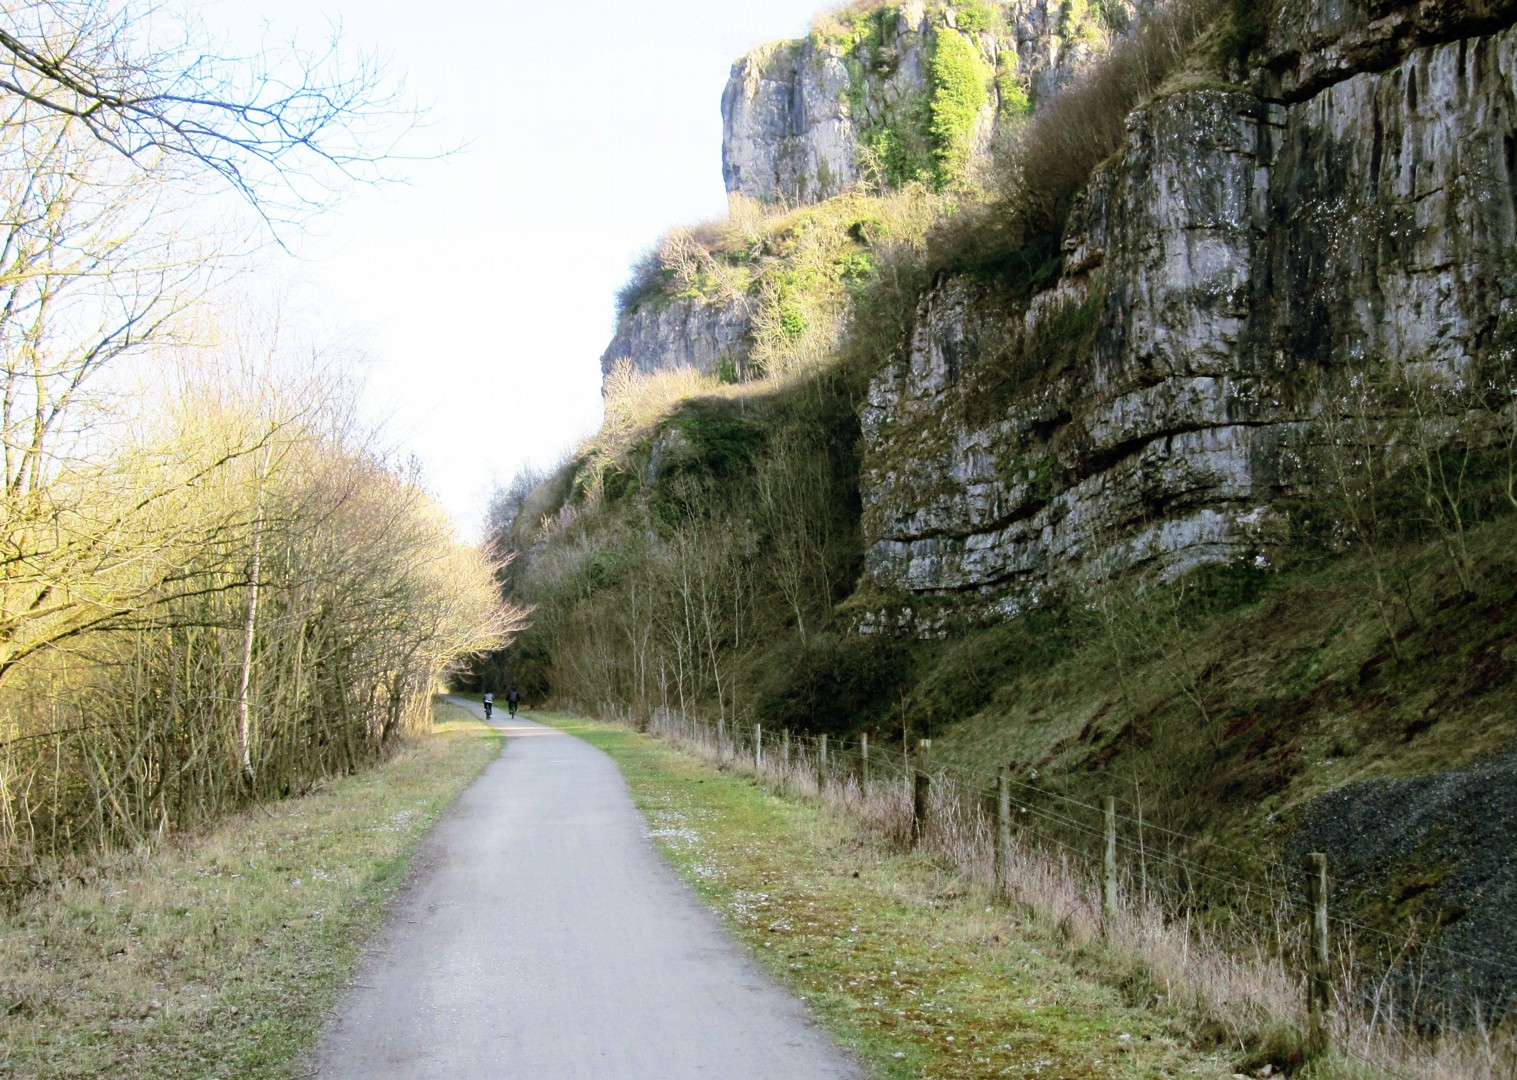 IMG_4469.JPG - UK - Derbyshire Dales - Dovedale - Guided Leisure Cycling Holiday - Leisure Cycling